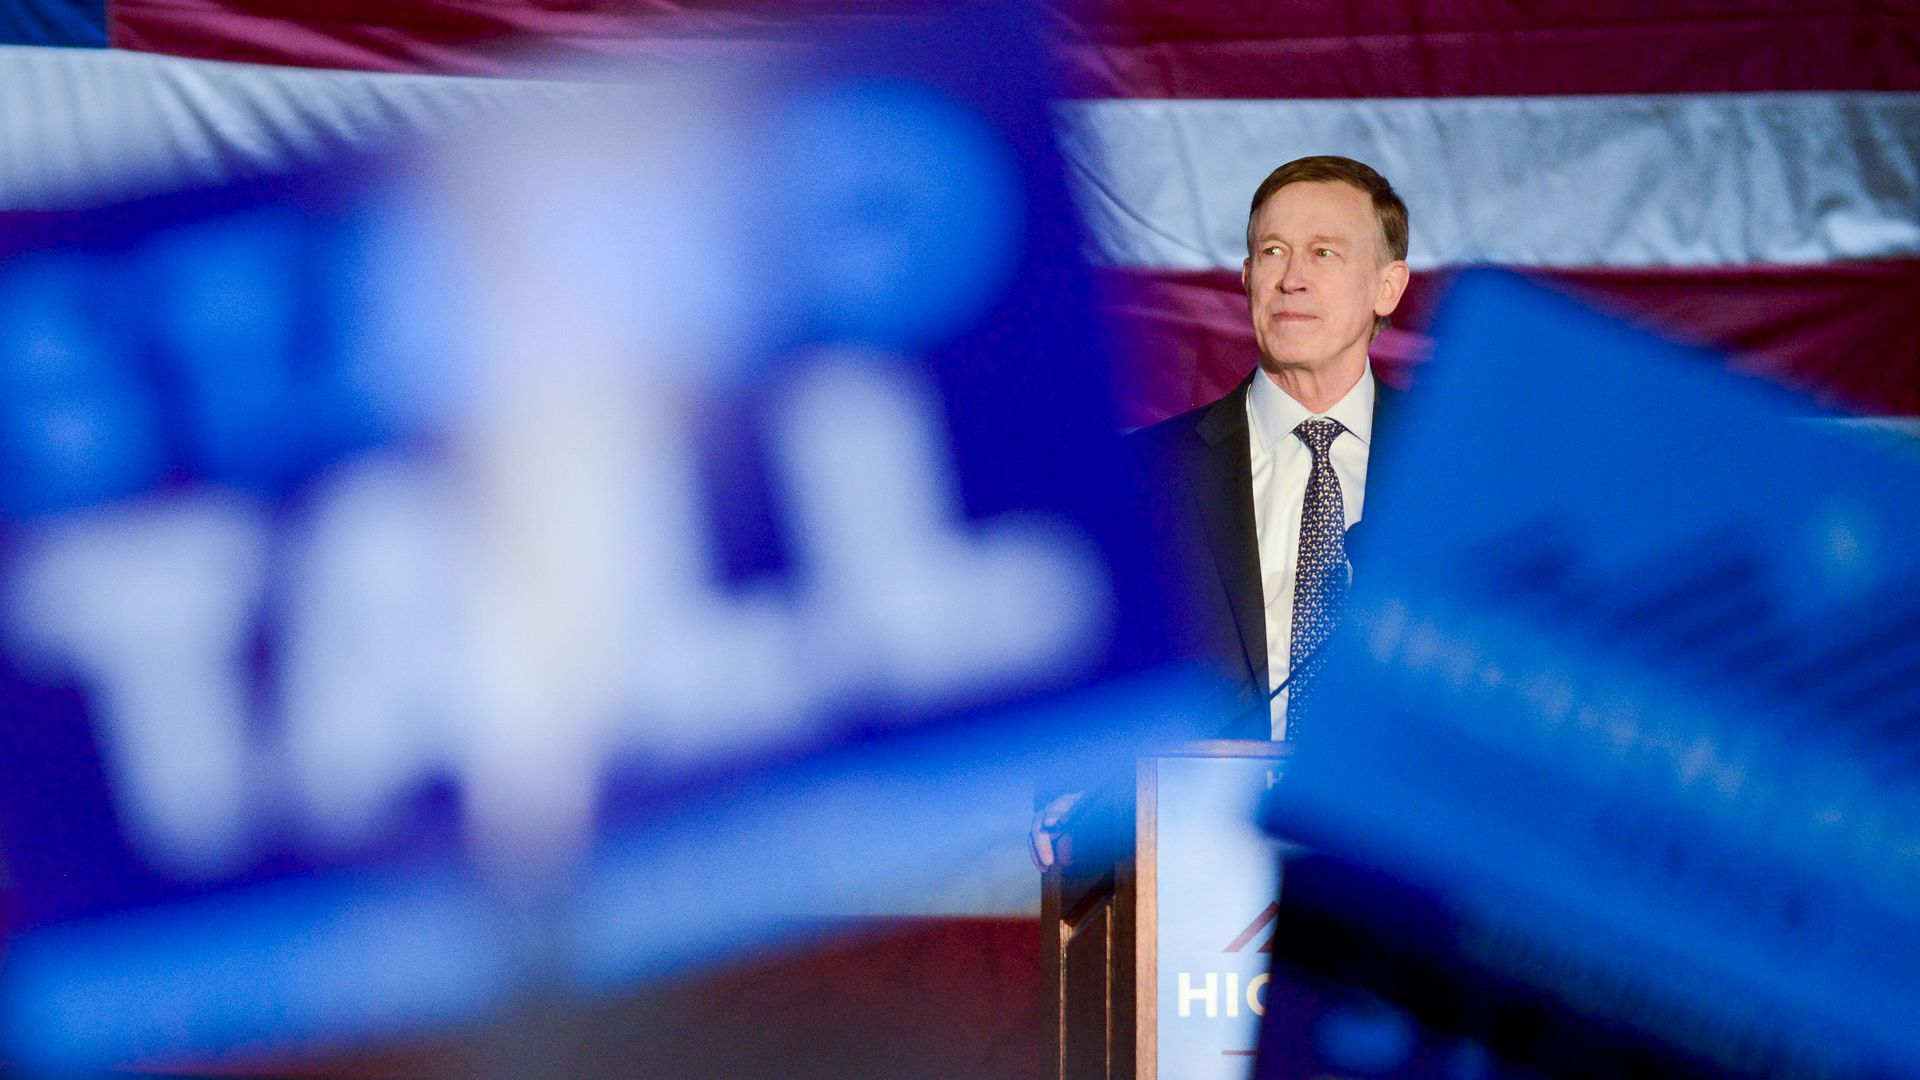 Hickenlooper speaks from behind a podium at a campaign rally, framed by blue signs.